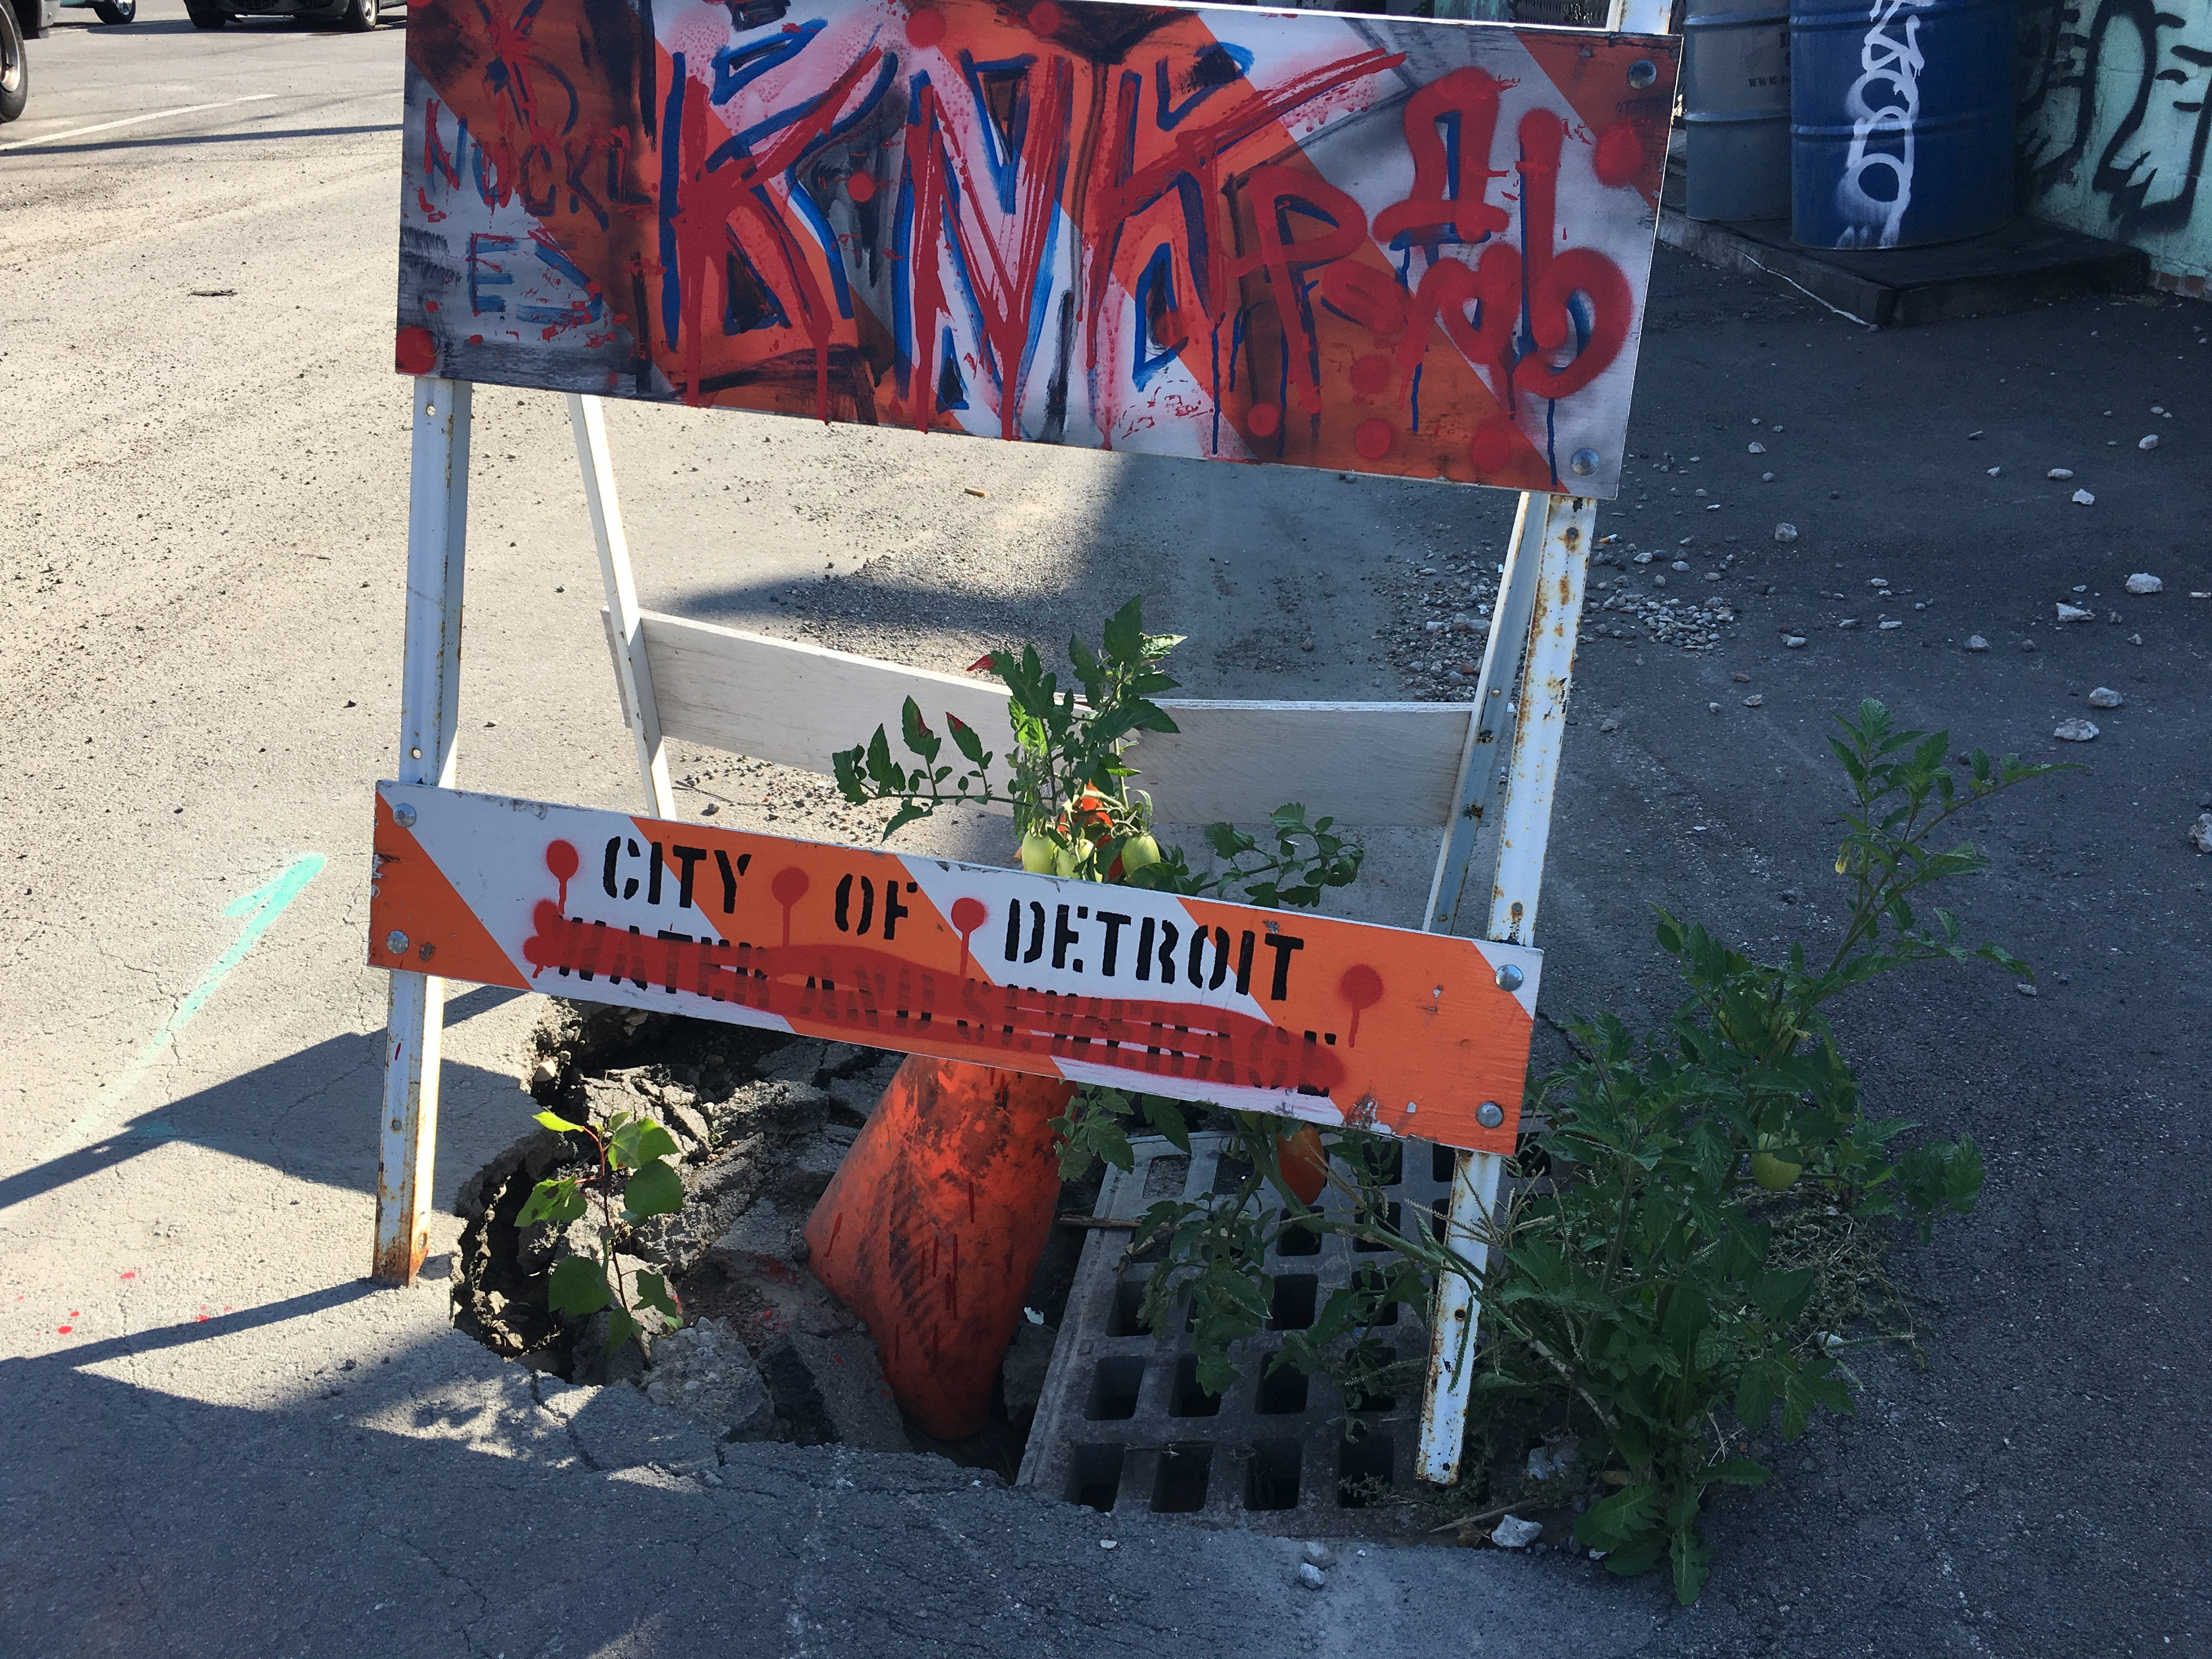 A tomato plant with mostly green fruit sprouts inside an orange sandwich board-type city of Detroit caution sign and orange cone sitting inside a pothole with a sewer grate.